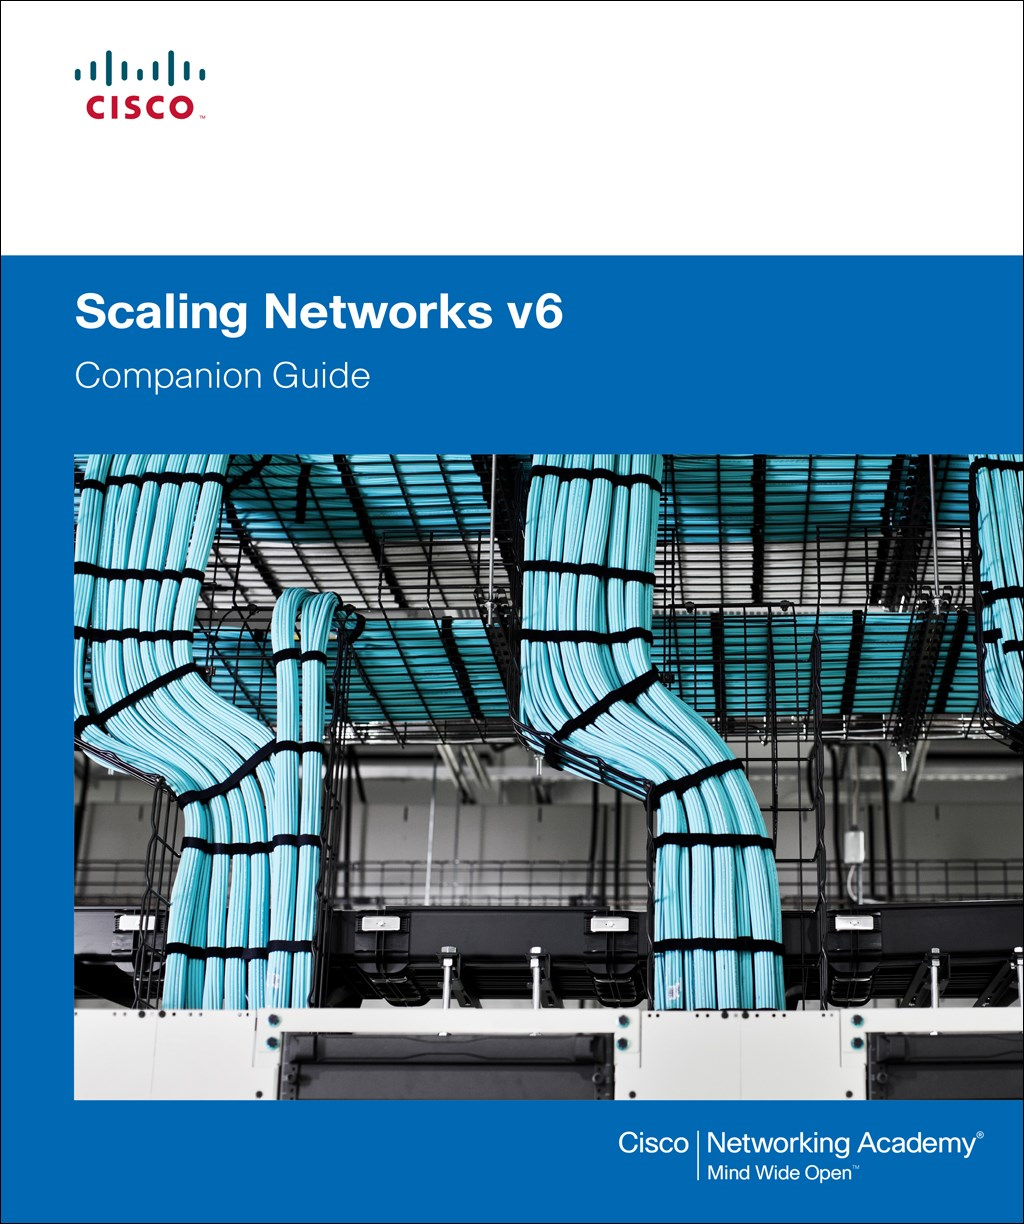 Scaling Networks v6 Companion Guide